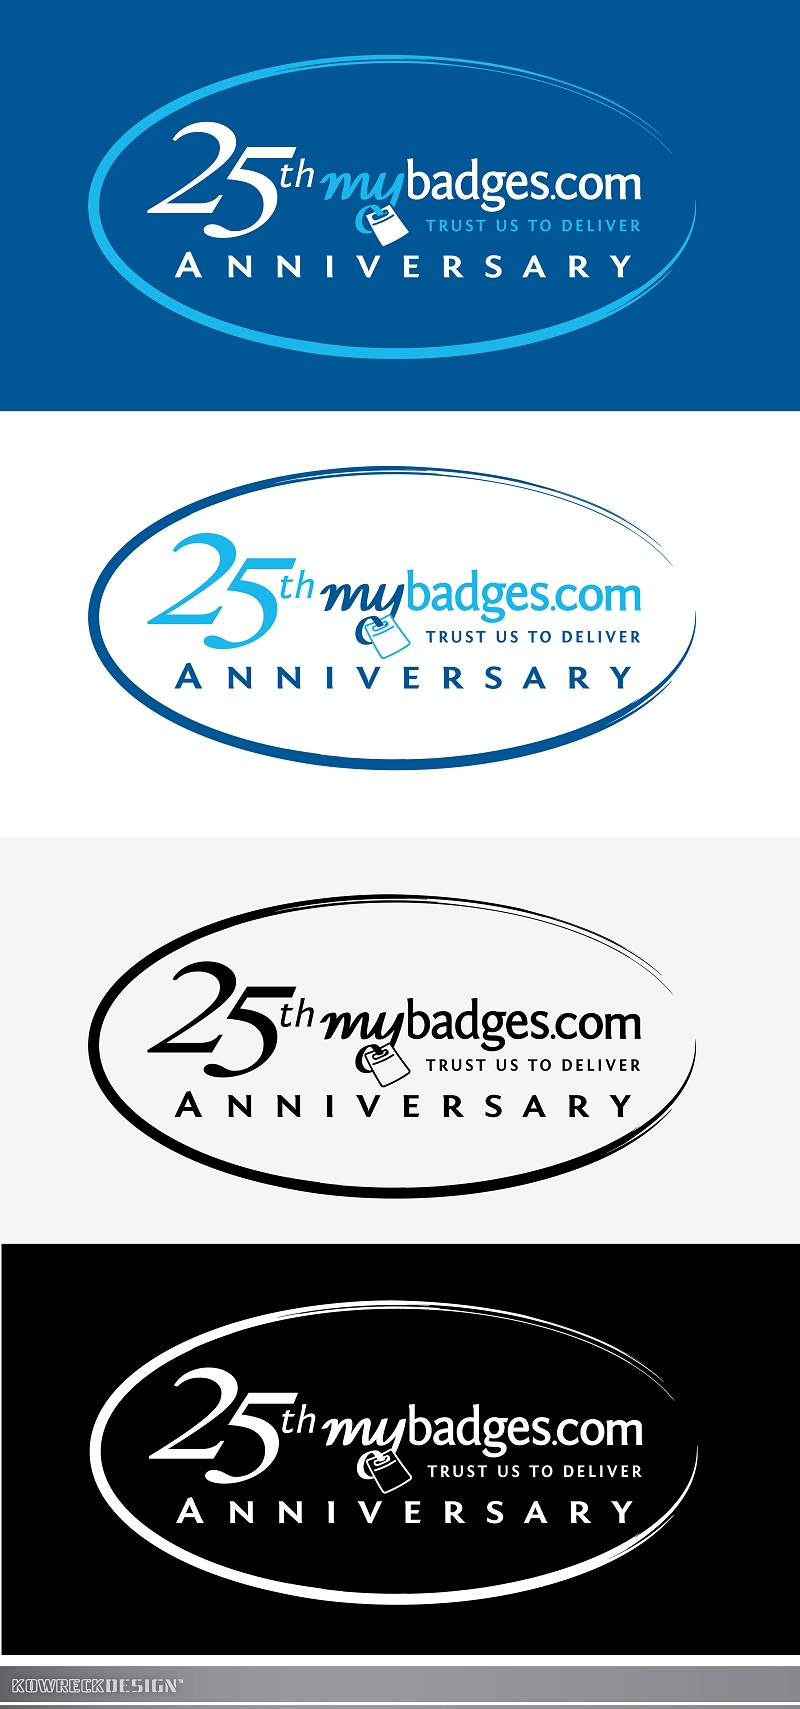 Logo Design by kowreck - Entry No. 141 in the Logo Design Contest 25th Anniversary Logo Design Wanted for MyBadges.com.